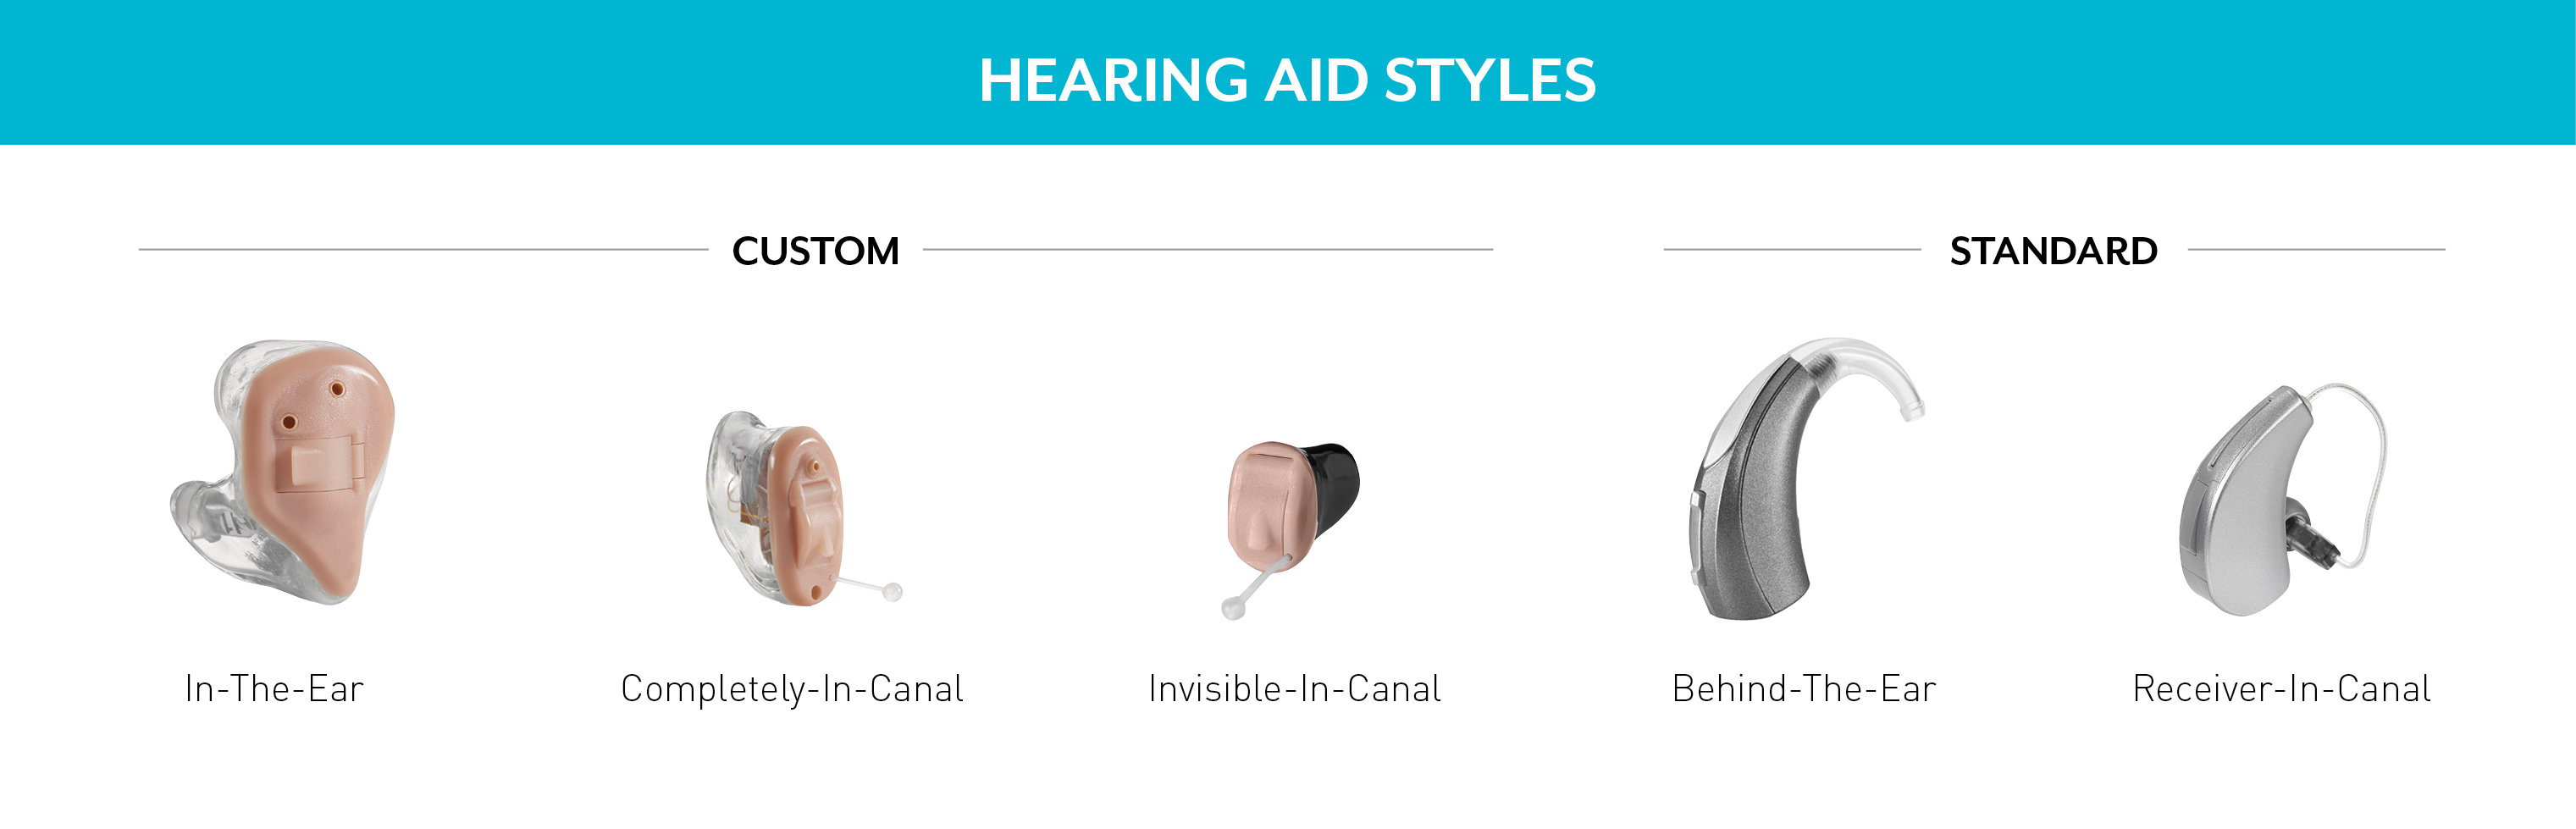 What styles of hearing aids can I get from Starkey?